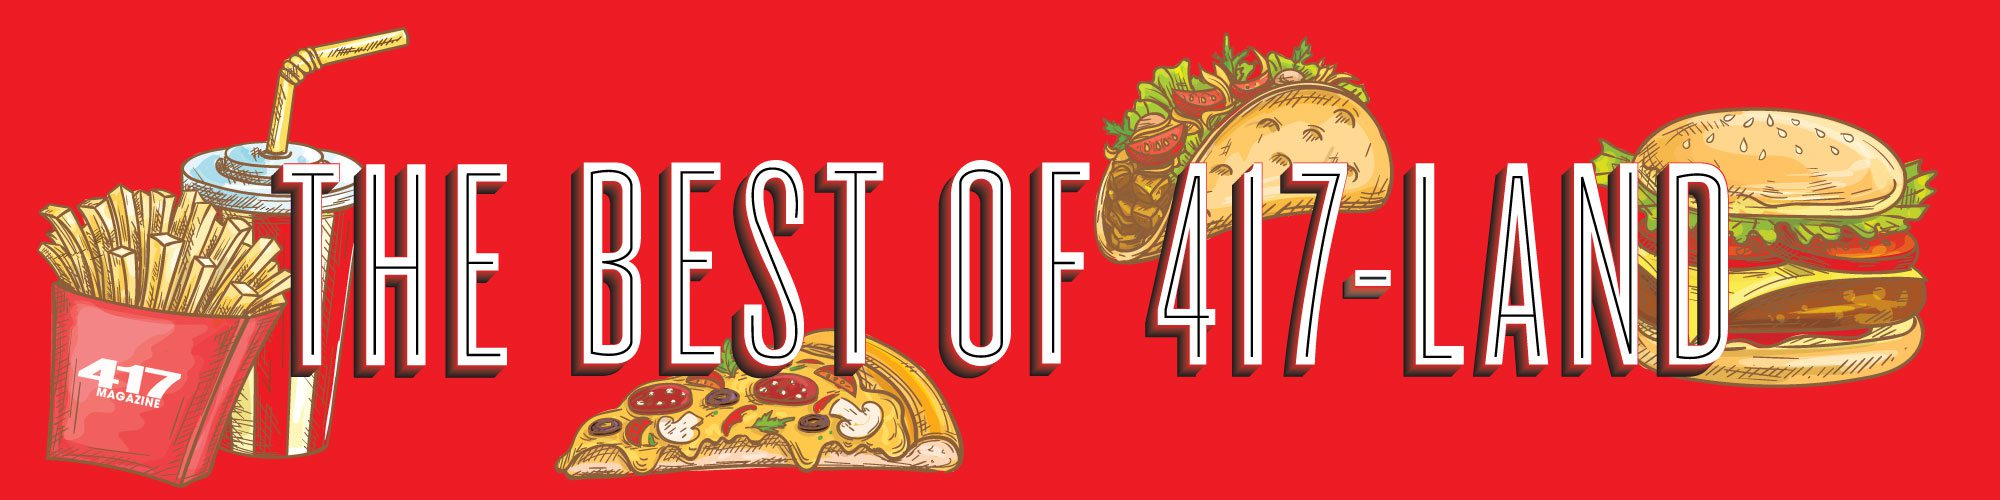 417 Magazine's Best of 417